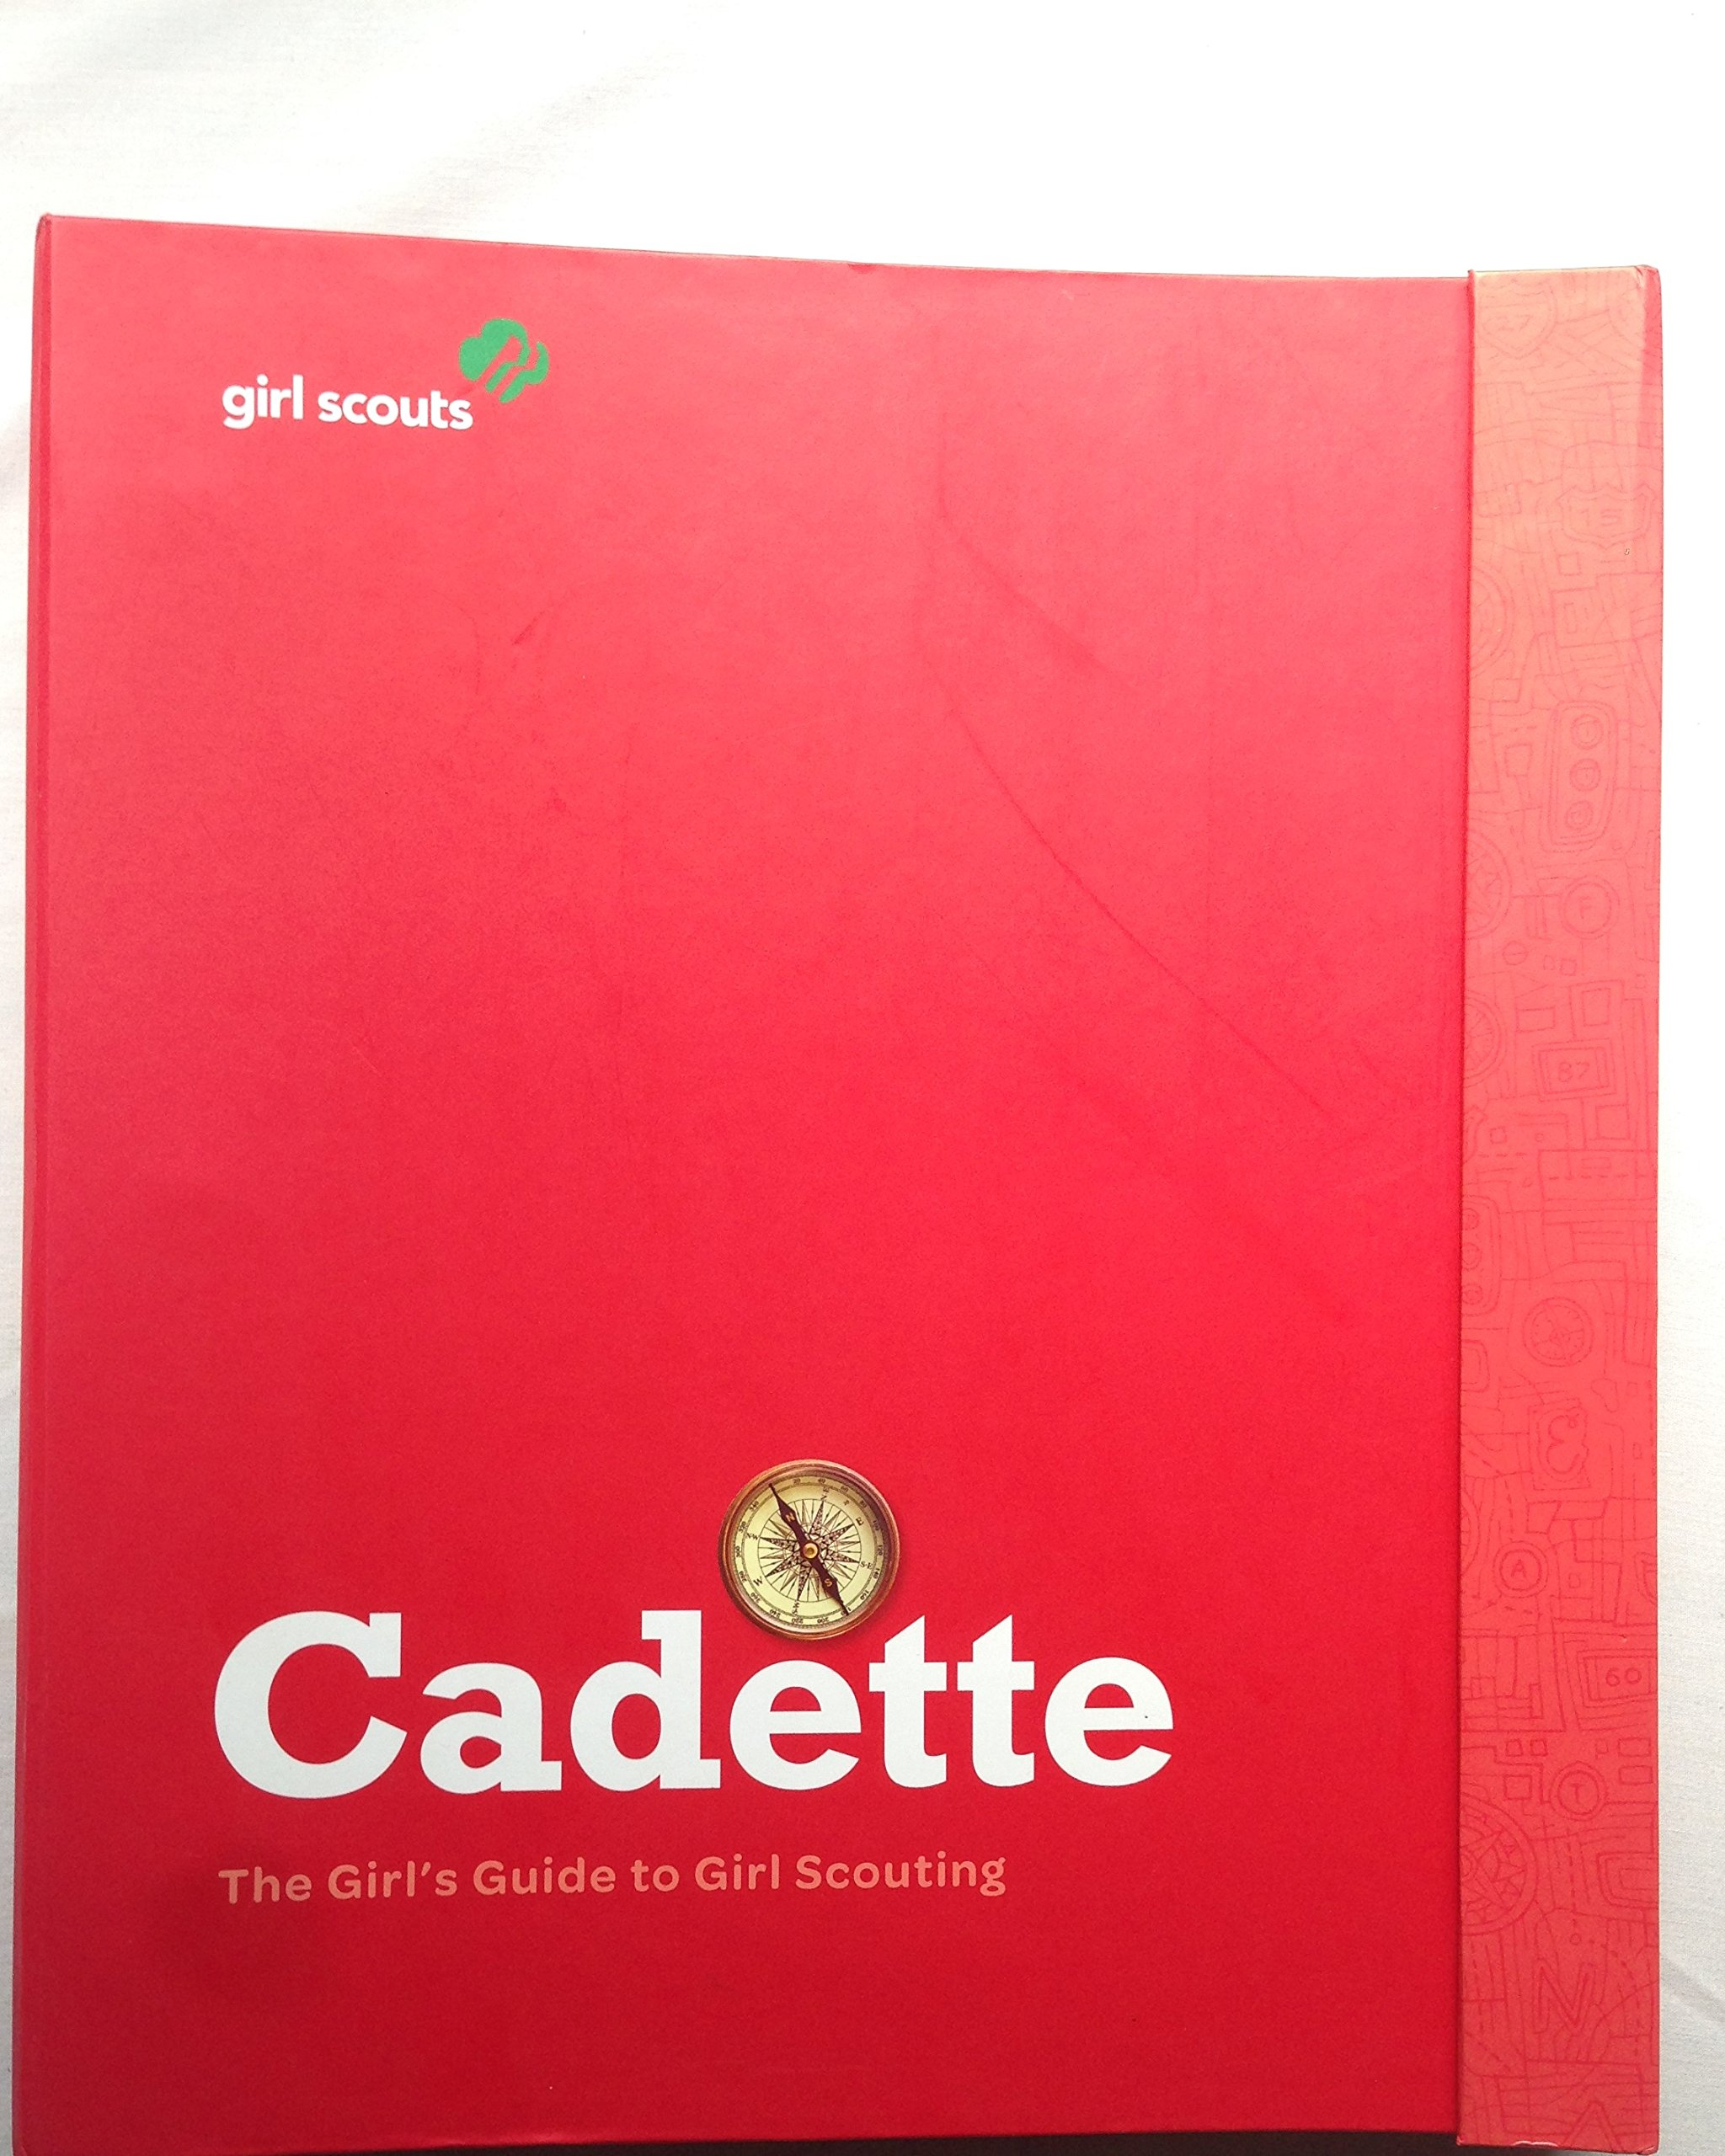 The Cadette Girl's Guide to Girl Scouting by Girl Scouts of the USA